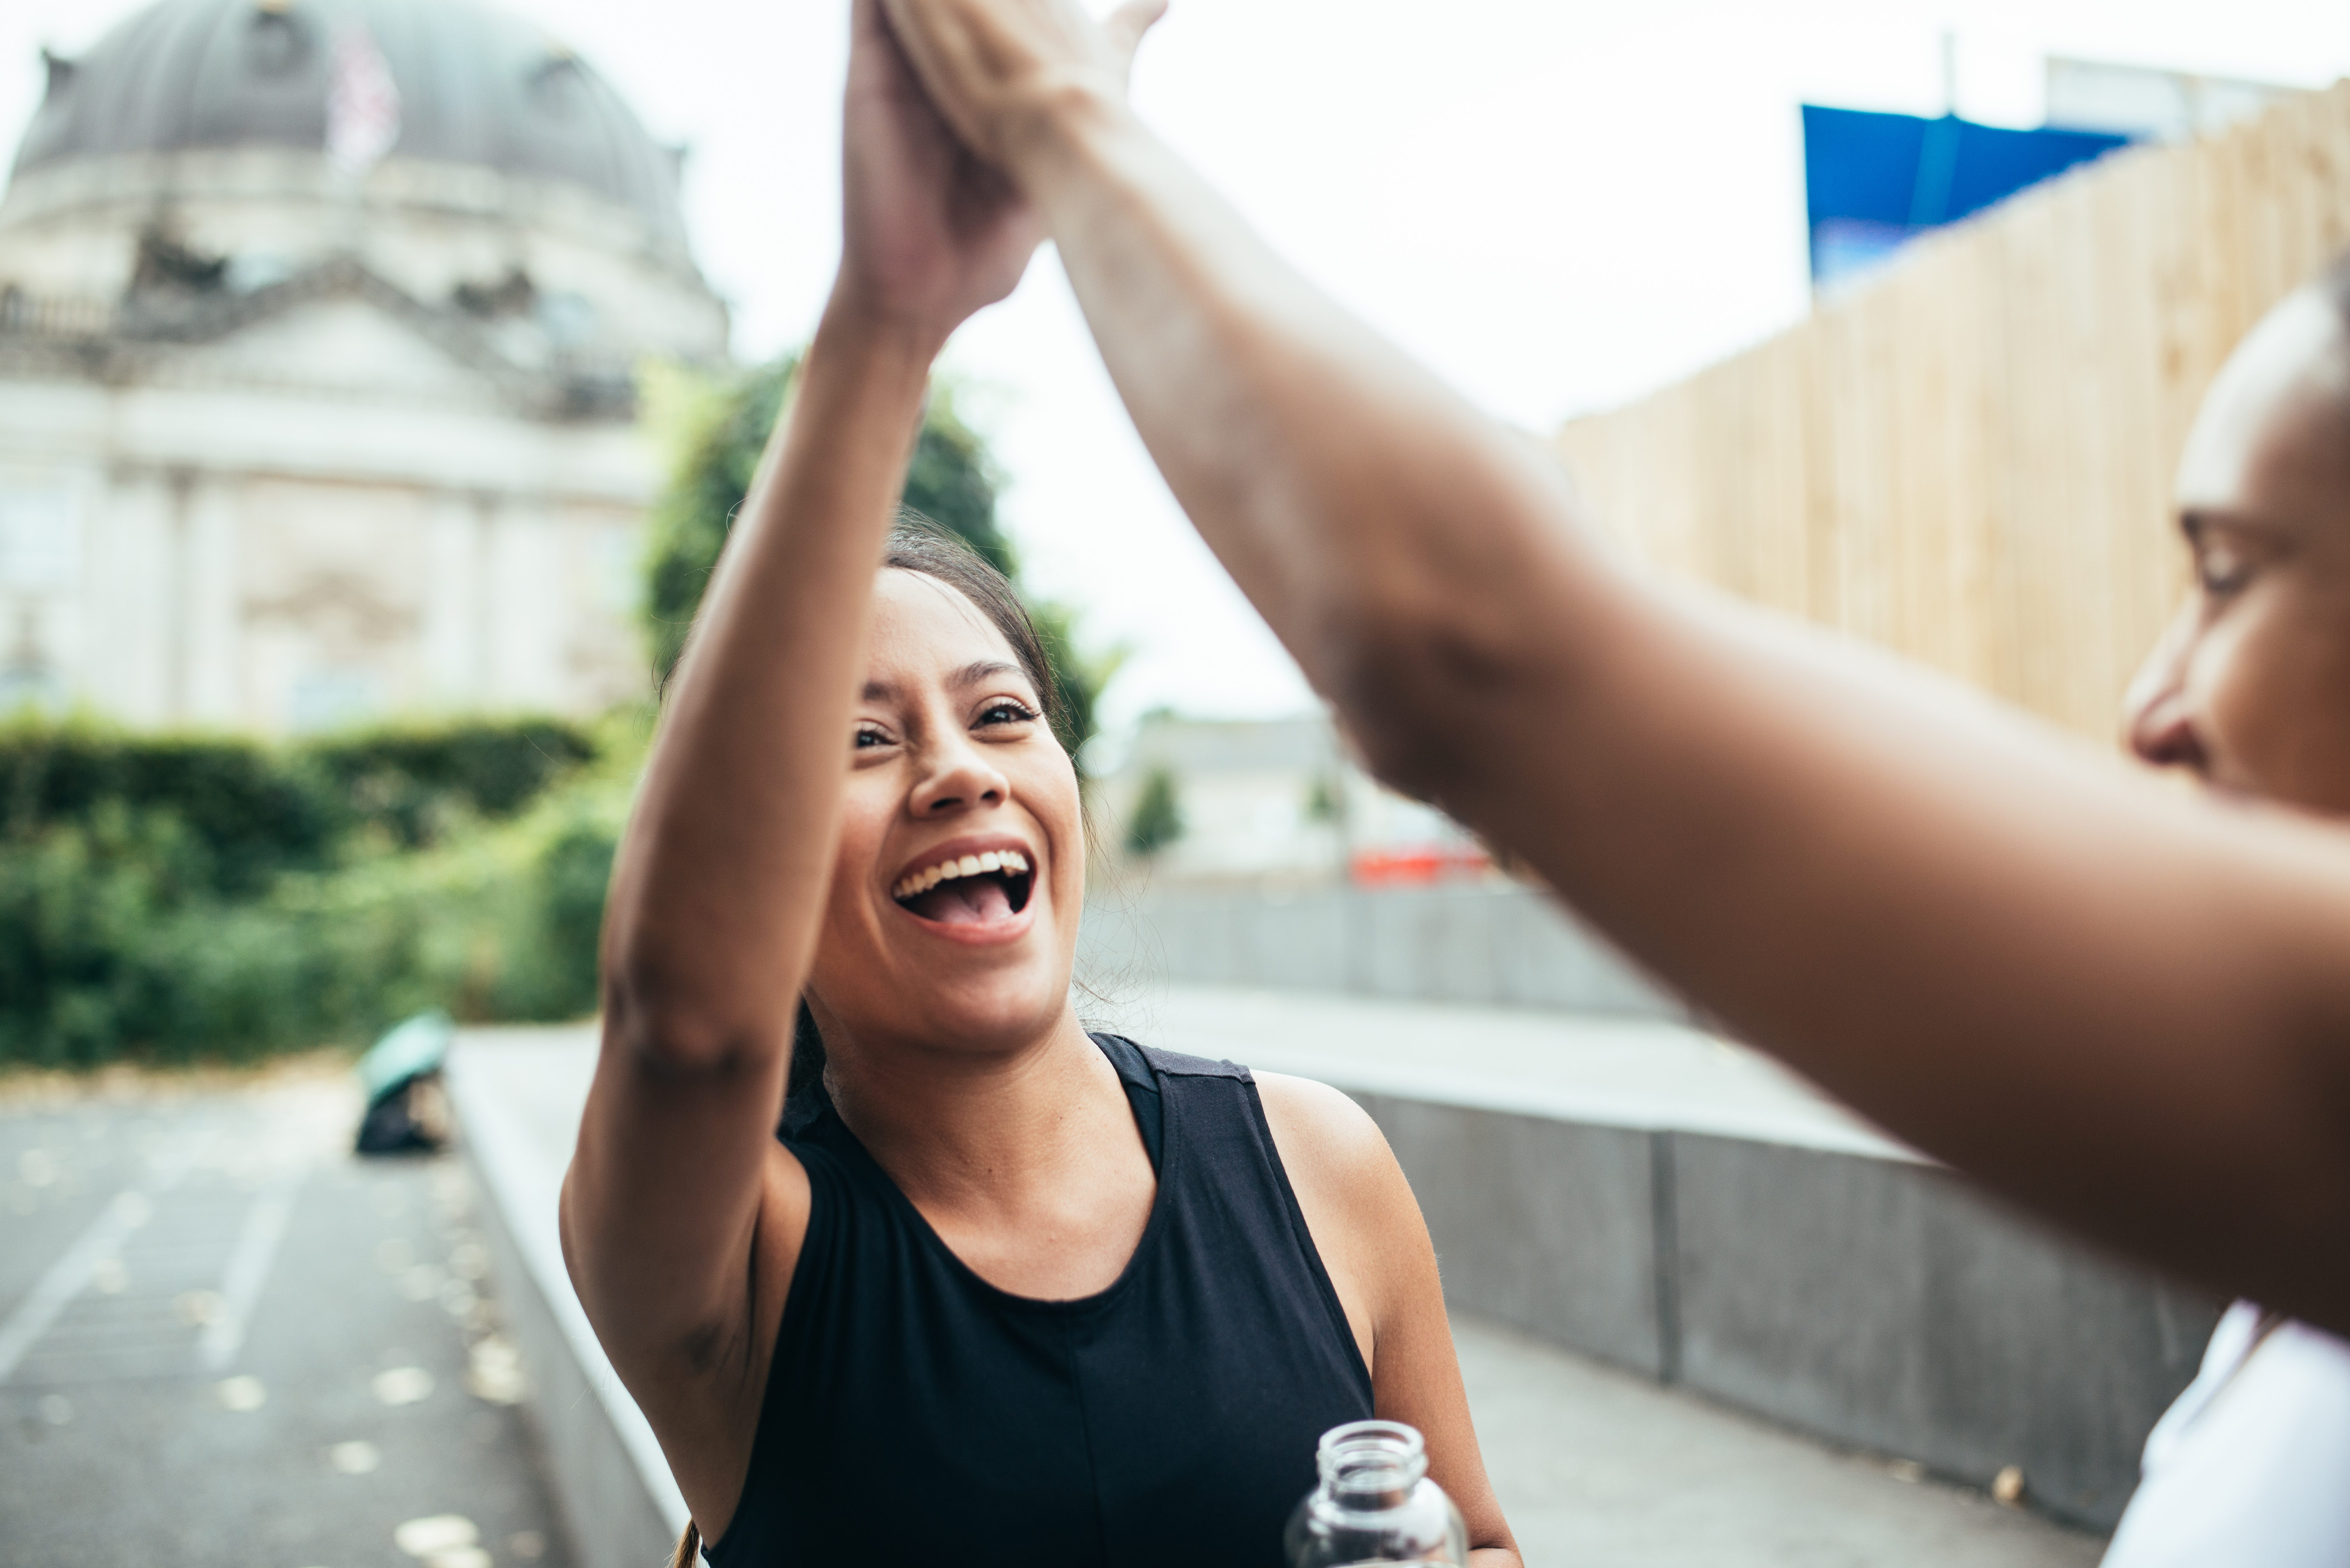 Two women giving high five after workout challenge.